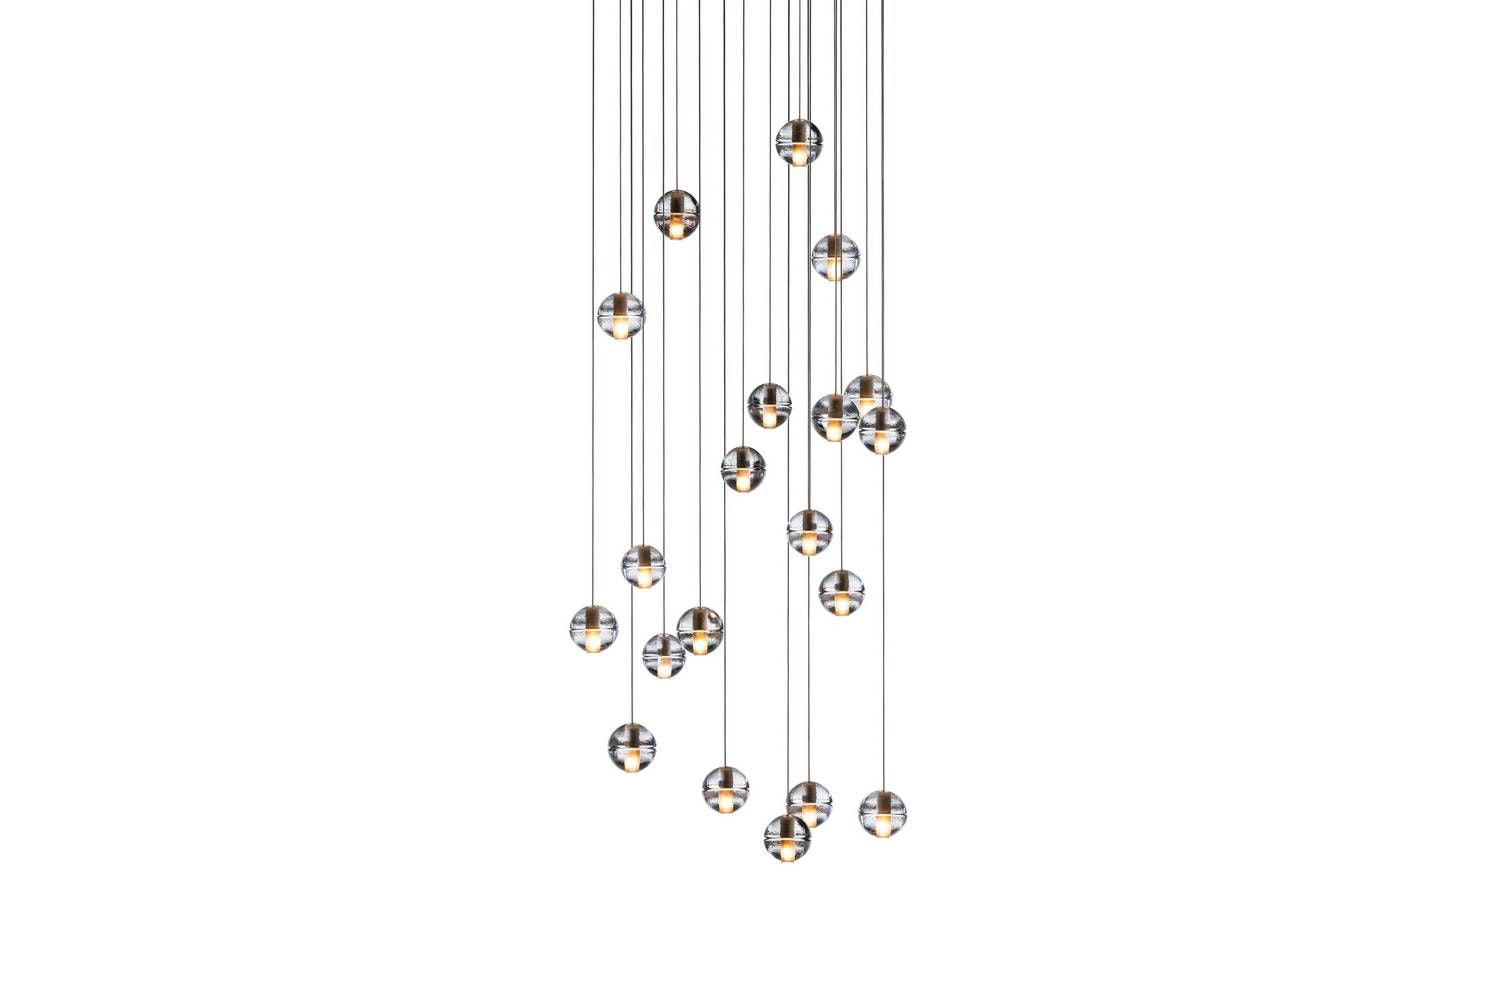 14.20 Standard Suspension Lamp by Omer Arbel for Bocci